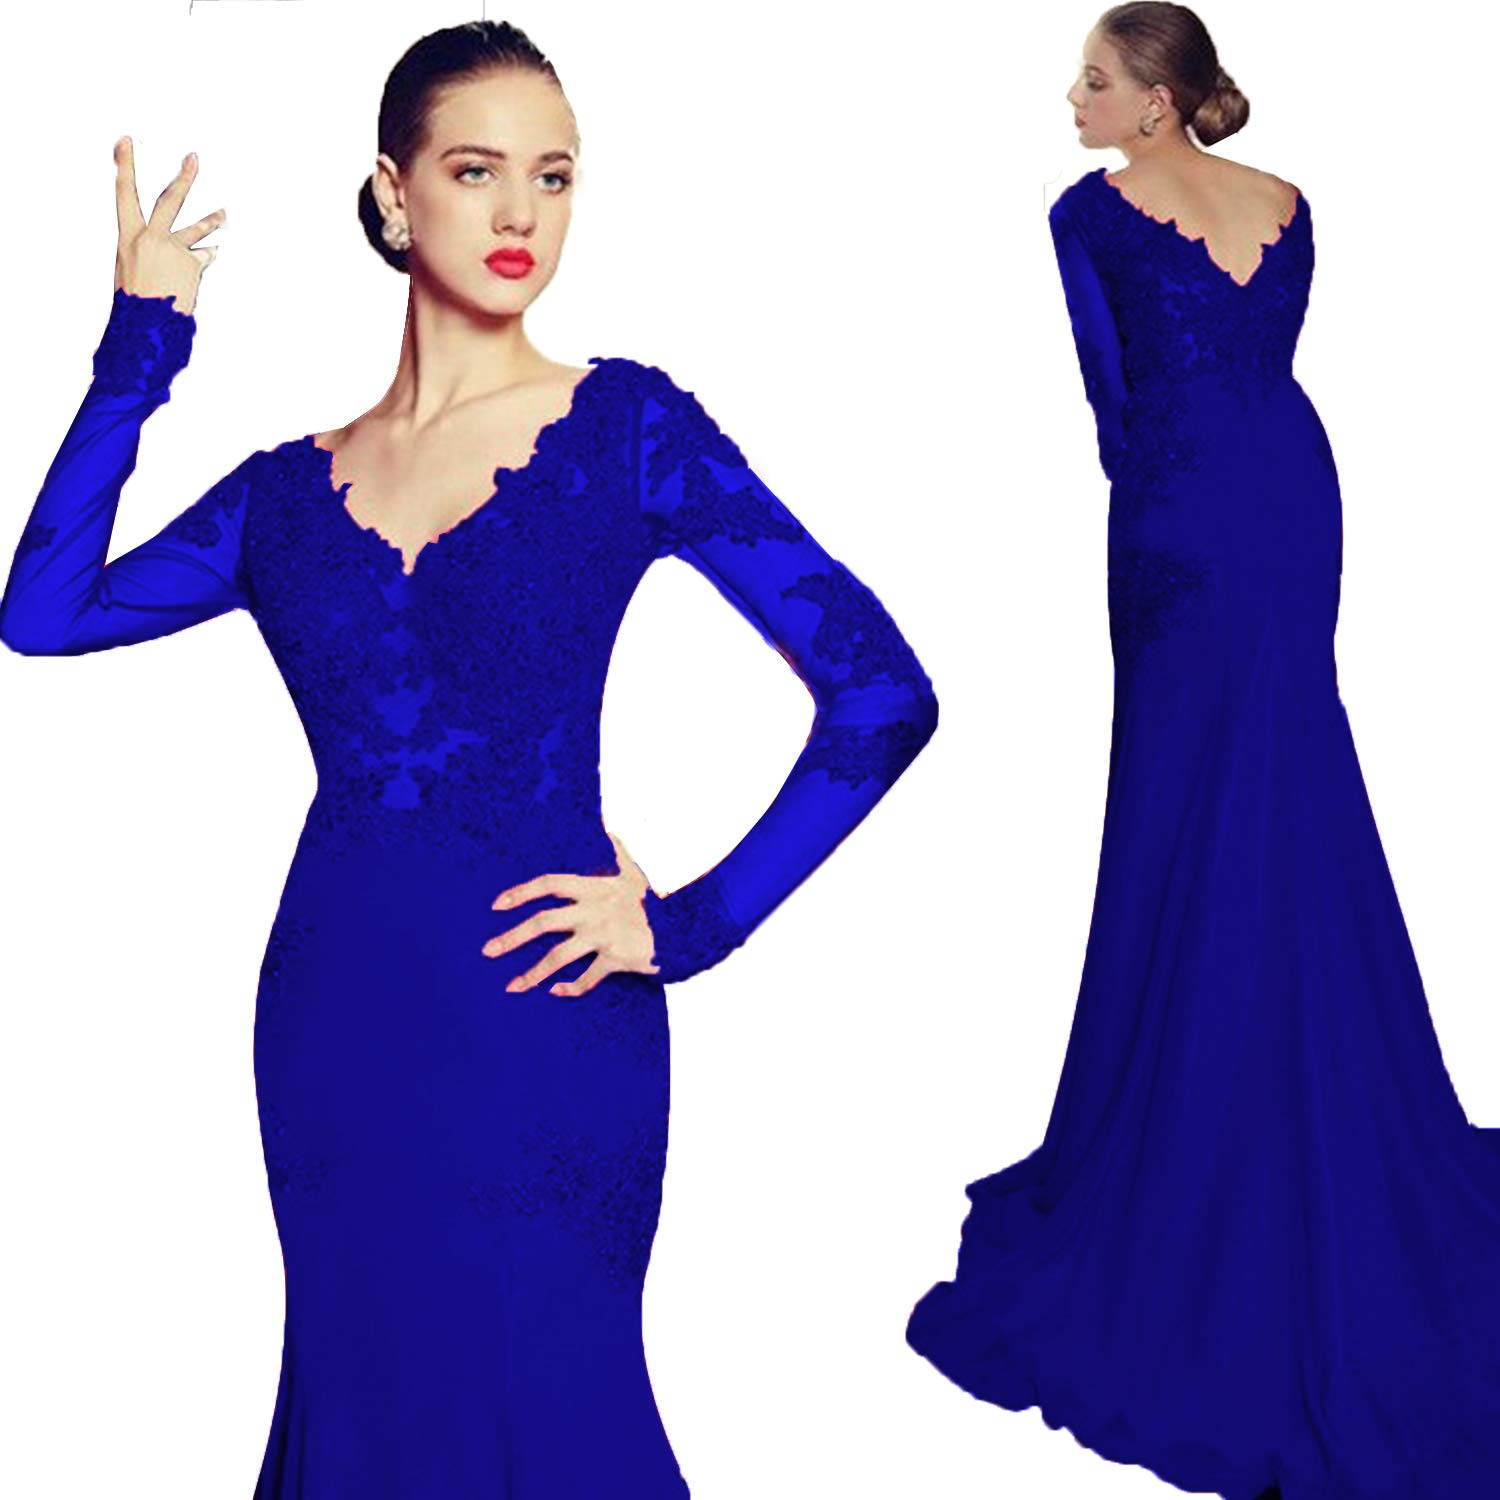 Royal bluee Promworld Women's Double V Neck Lace Applique Mermaid Prom Dress Illusion Formal Evening Gown with Sleeve with Sleeve